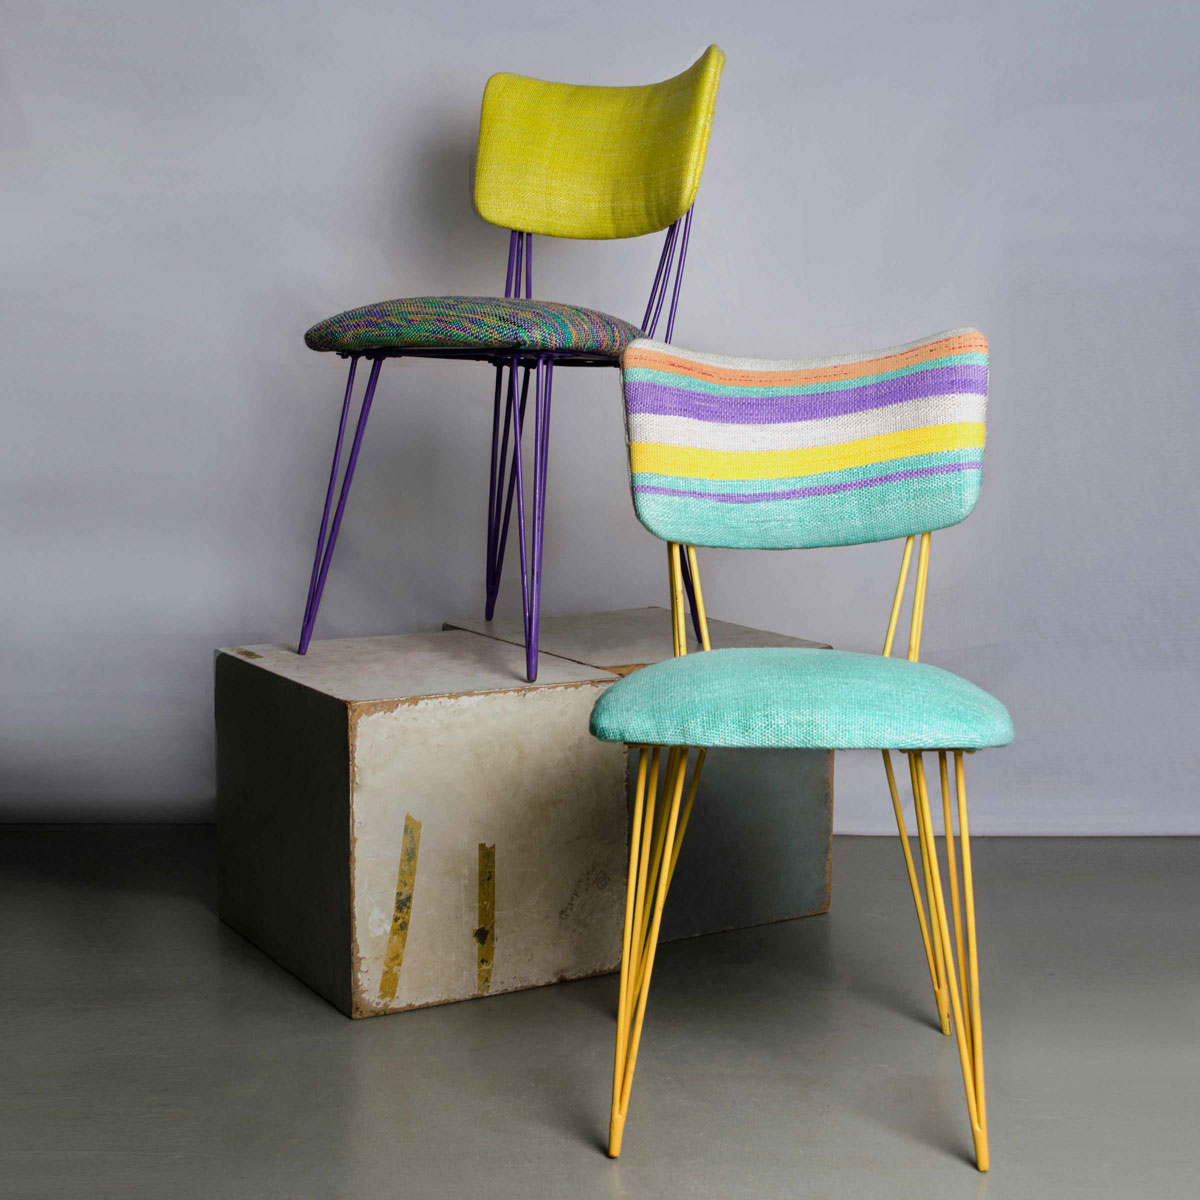 Furniture: Reform: From Trash To Furniture In Cairo